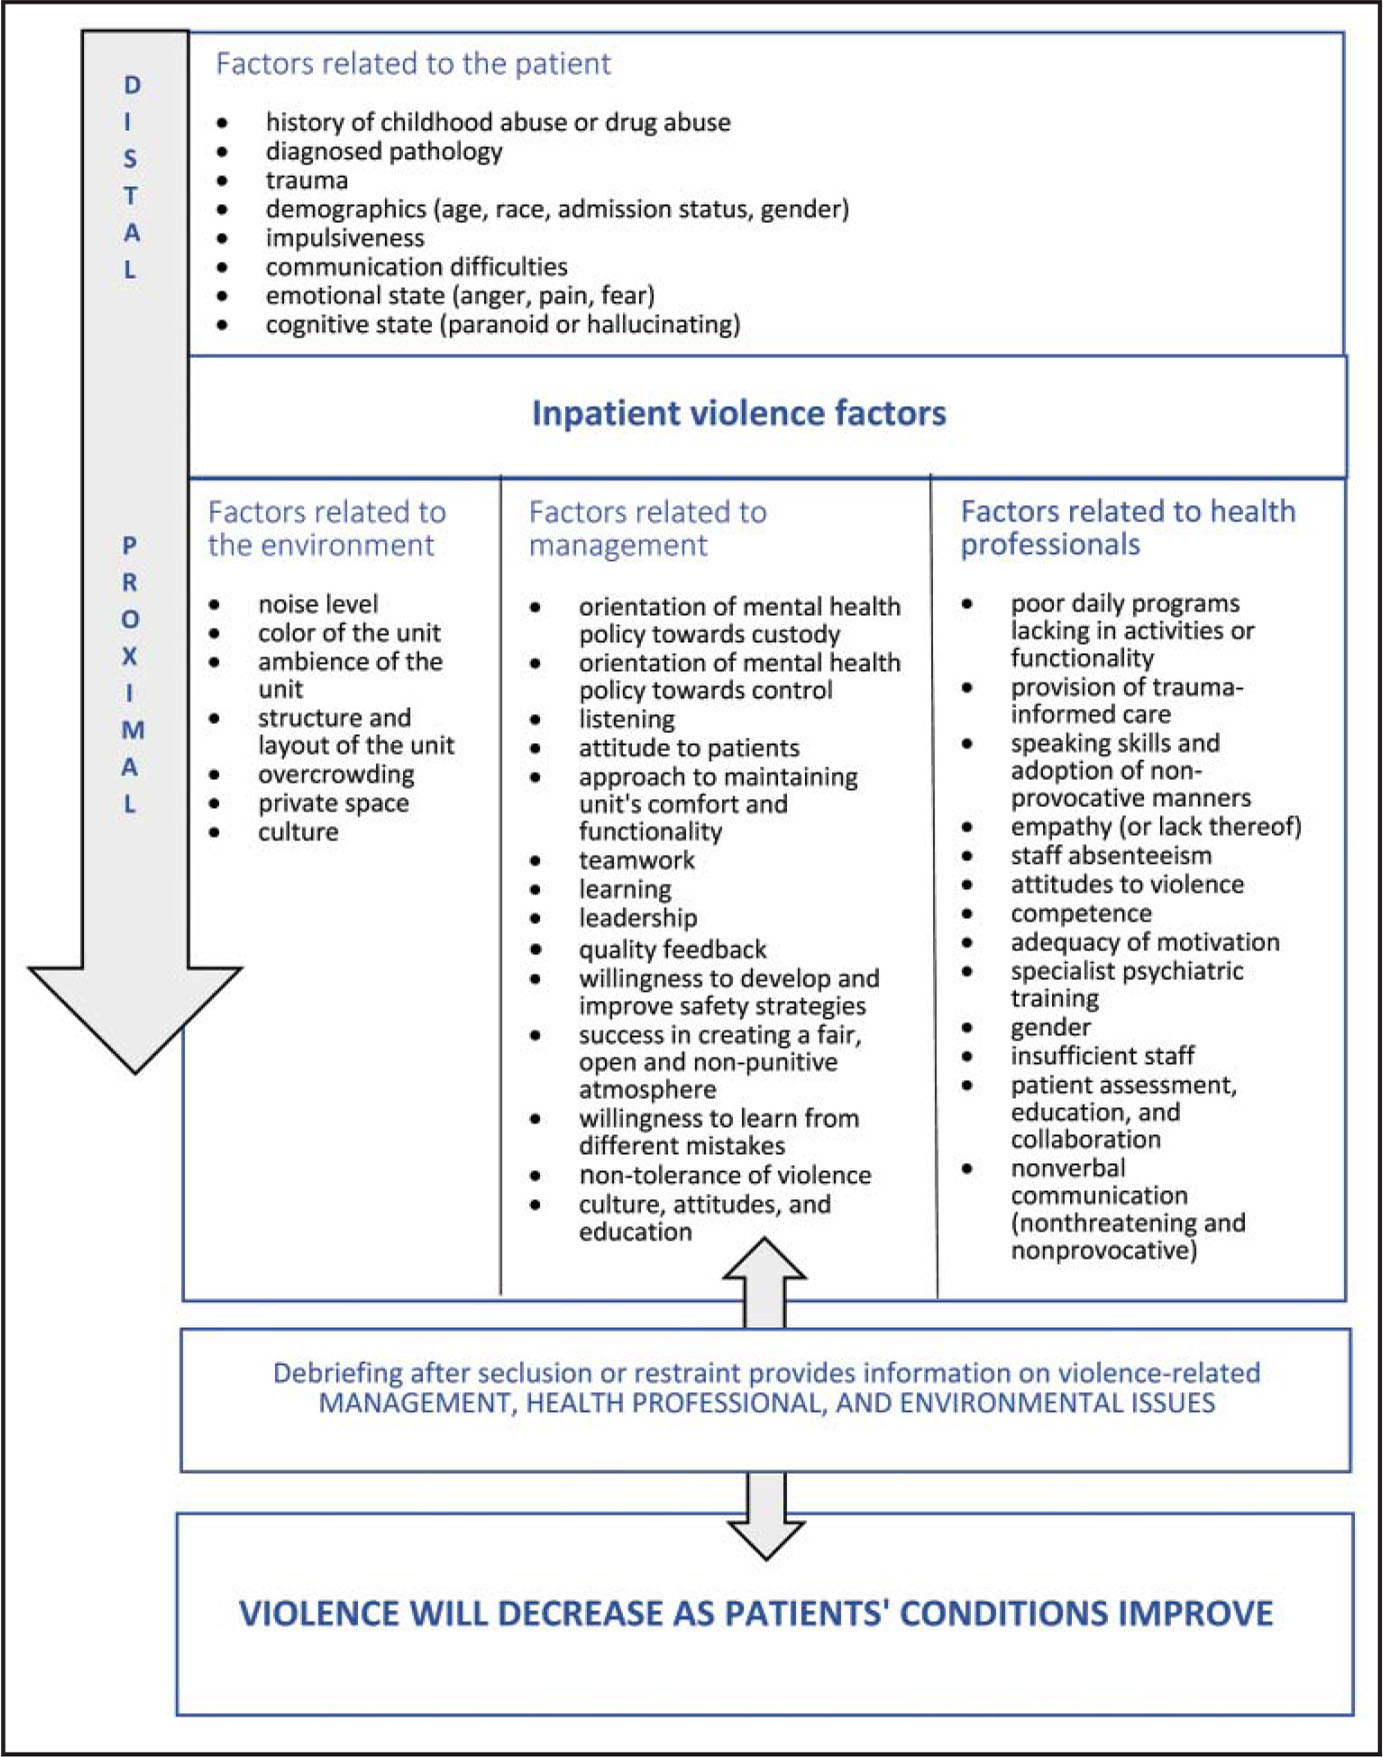 Violence factors and debriefing in psychiatric care.